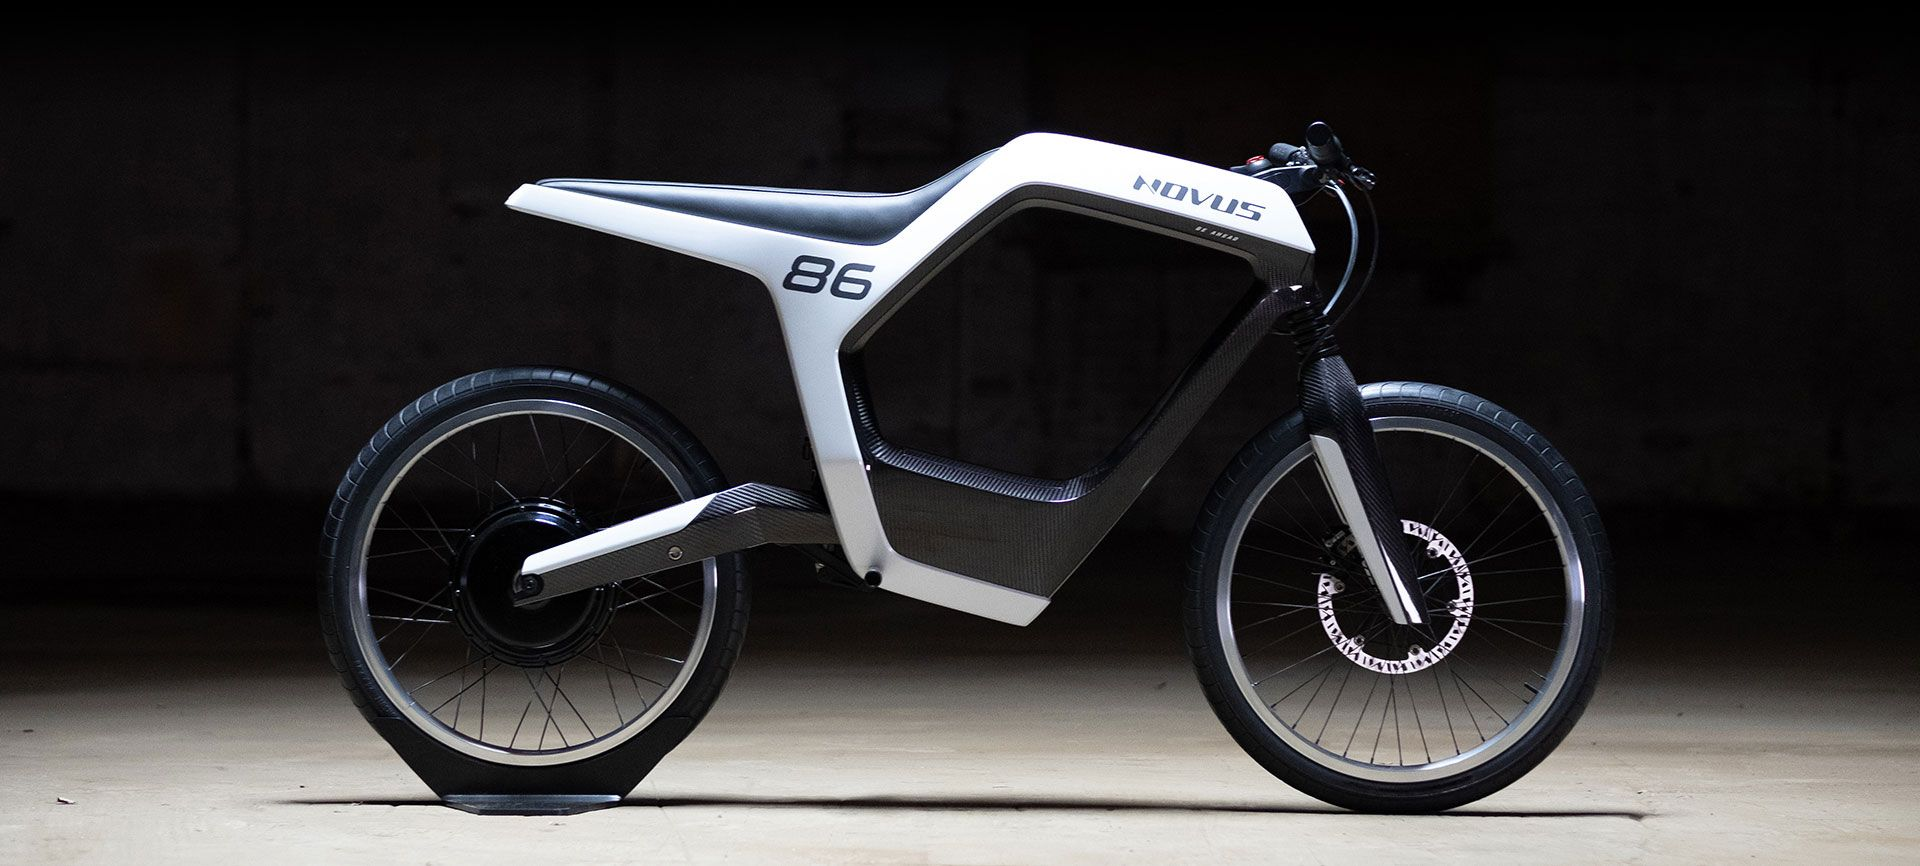 Novus Electric Motorcycle On Ces 2019 Scooters Motos Bici